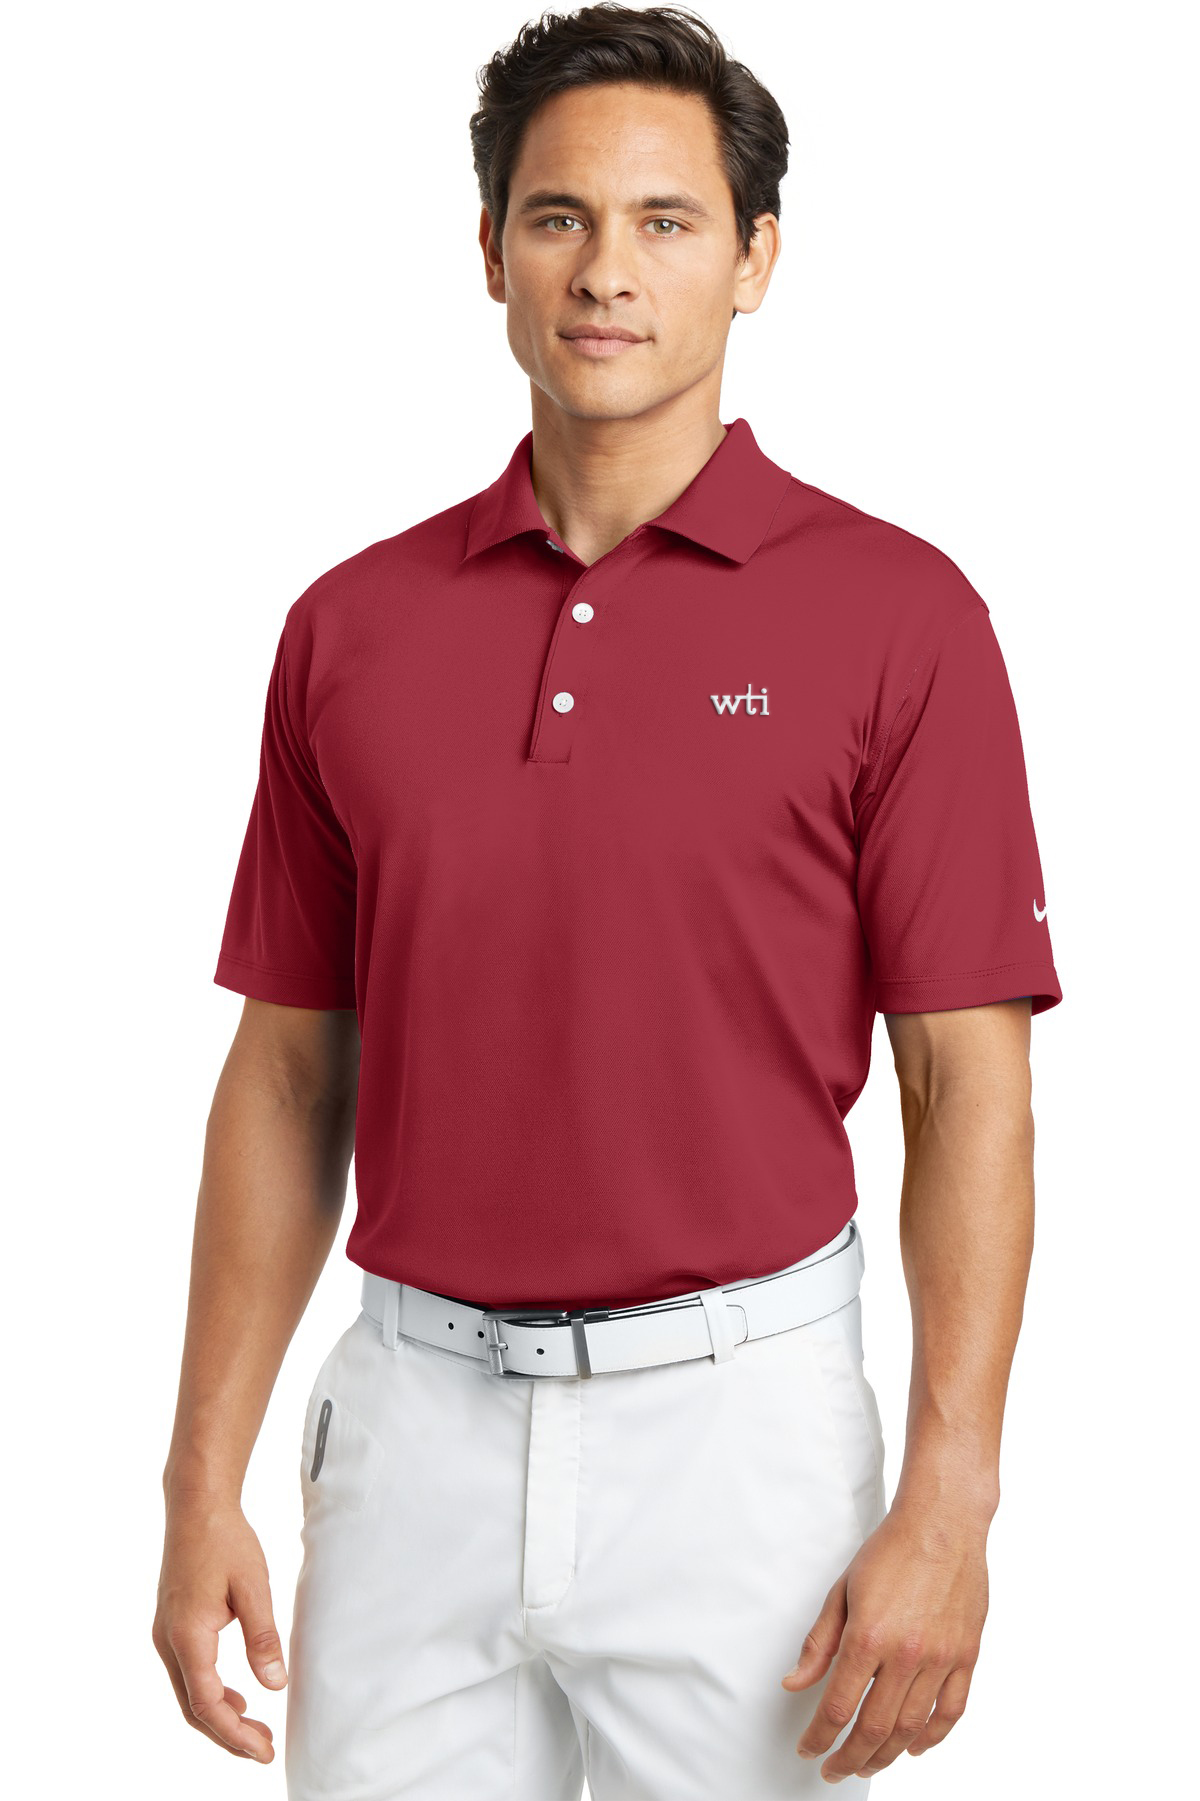 Nike Tech Basic Dri-FIT Polo.  203690. Prices Starting At $50!